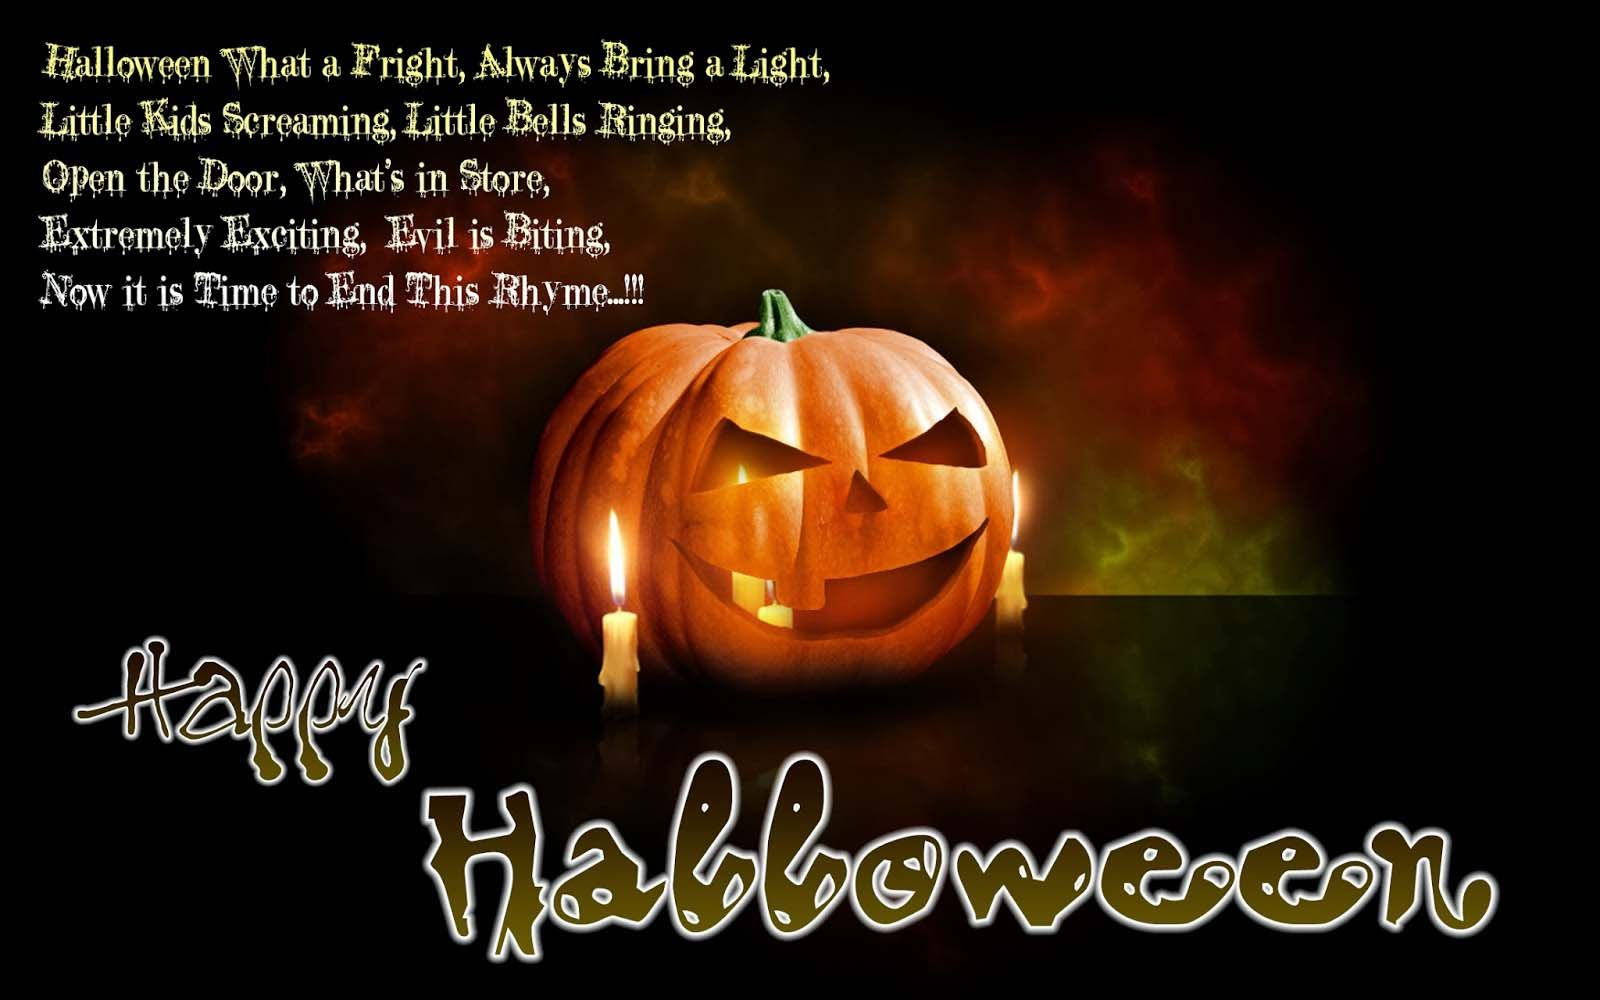 Happy Halloween Greetings Pictures Halloween Wishes Collections